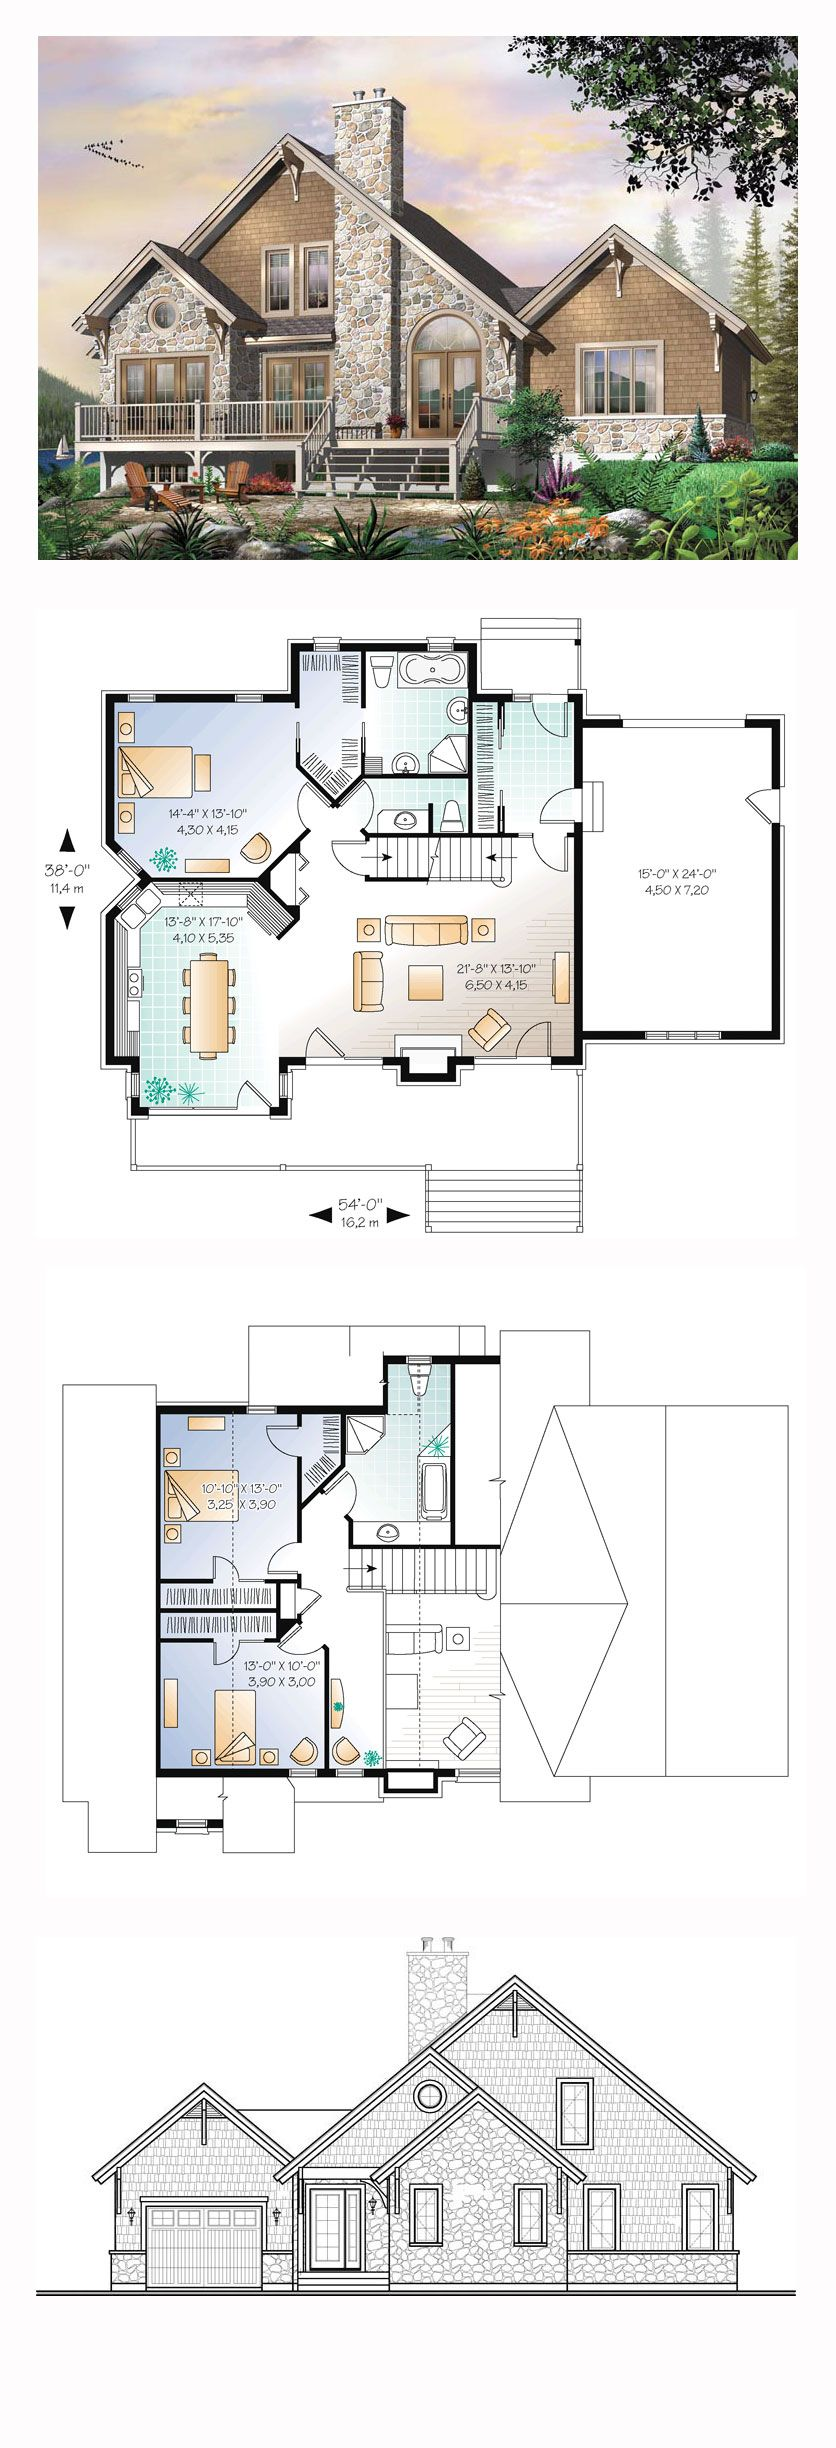 Coastal country craftsman european traditional house plan for Coastal craftsman house plans